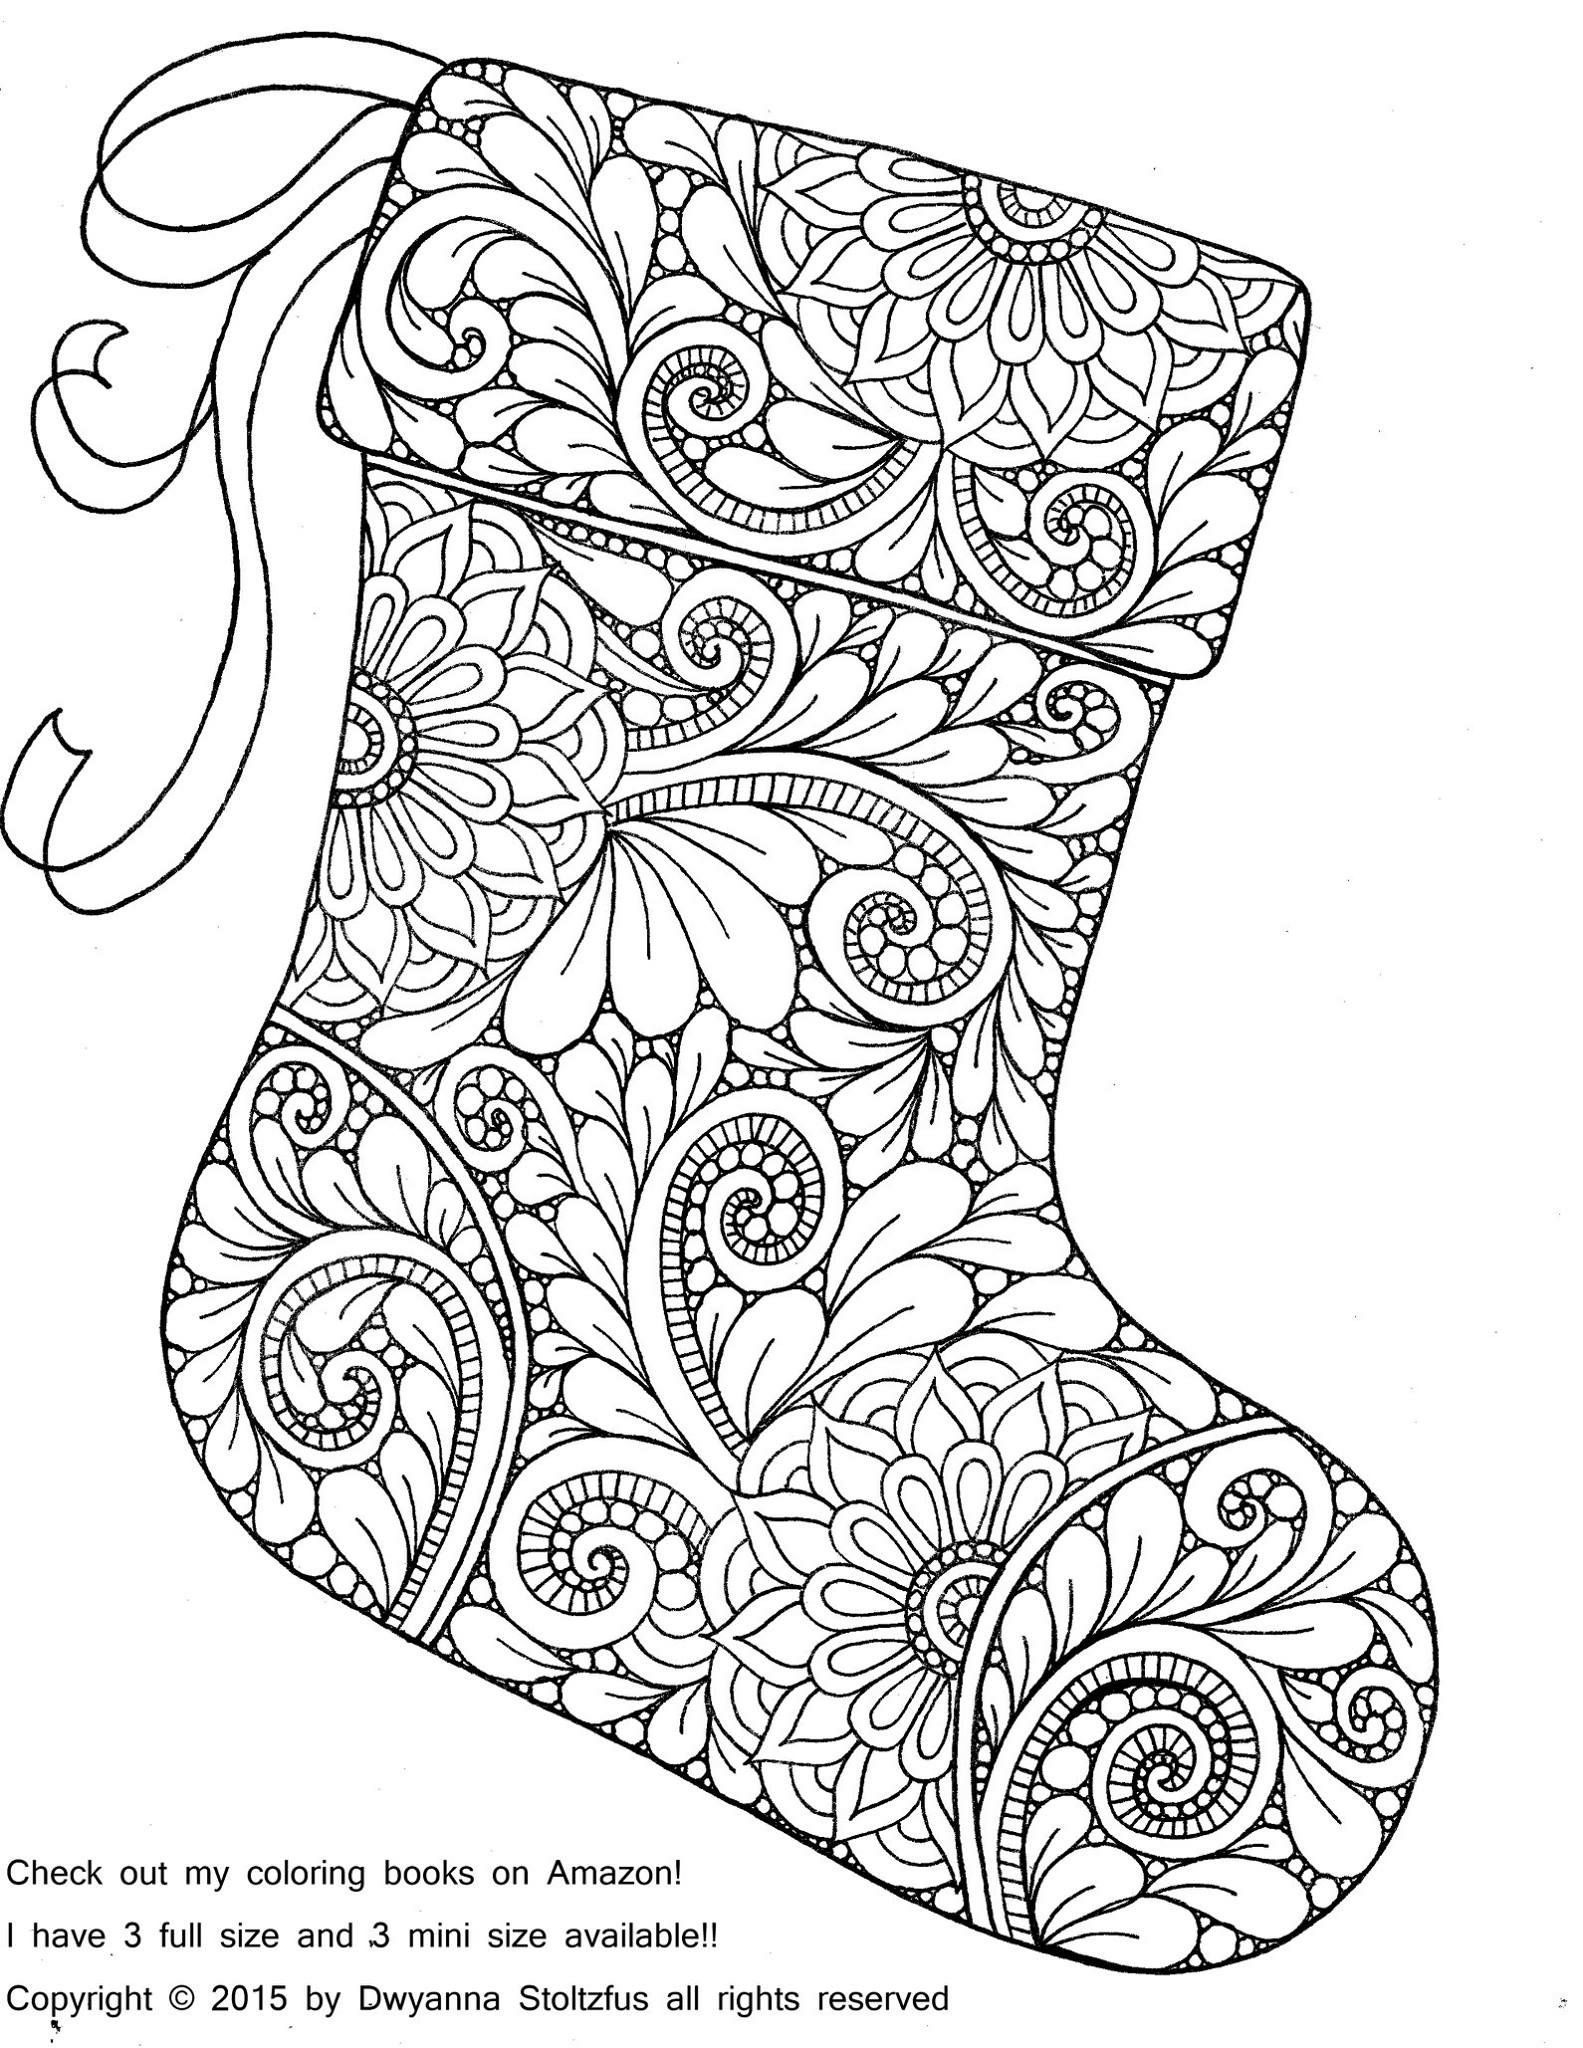 Christmas Colouring Pages Mindfulness With Stocking Coloring Page Pinterest